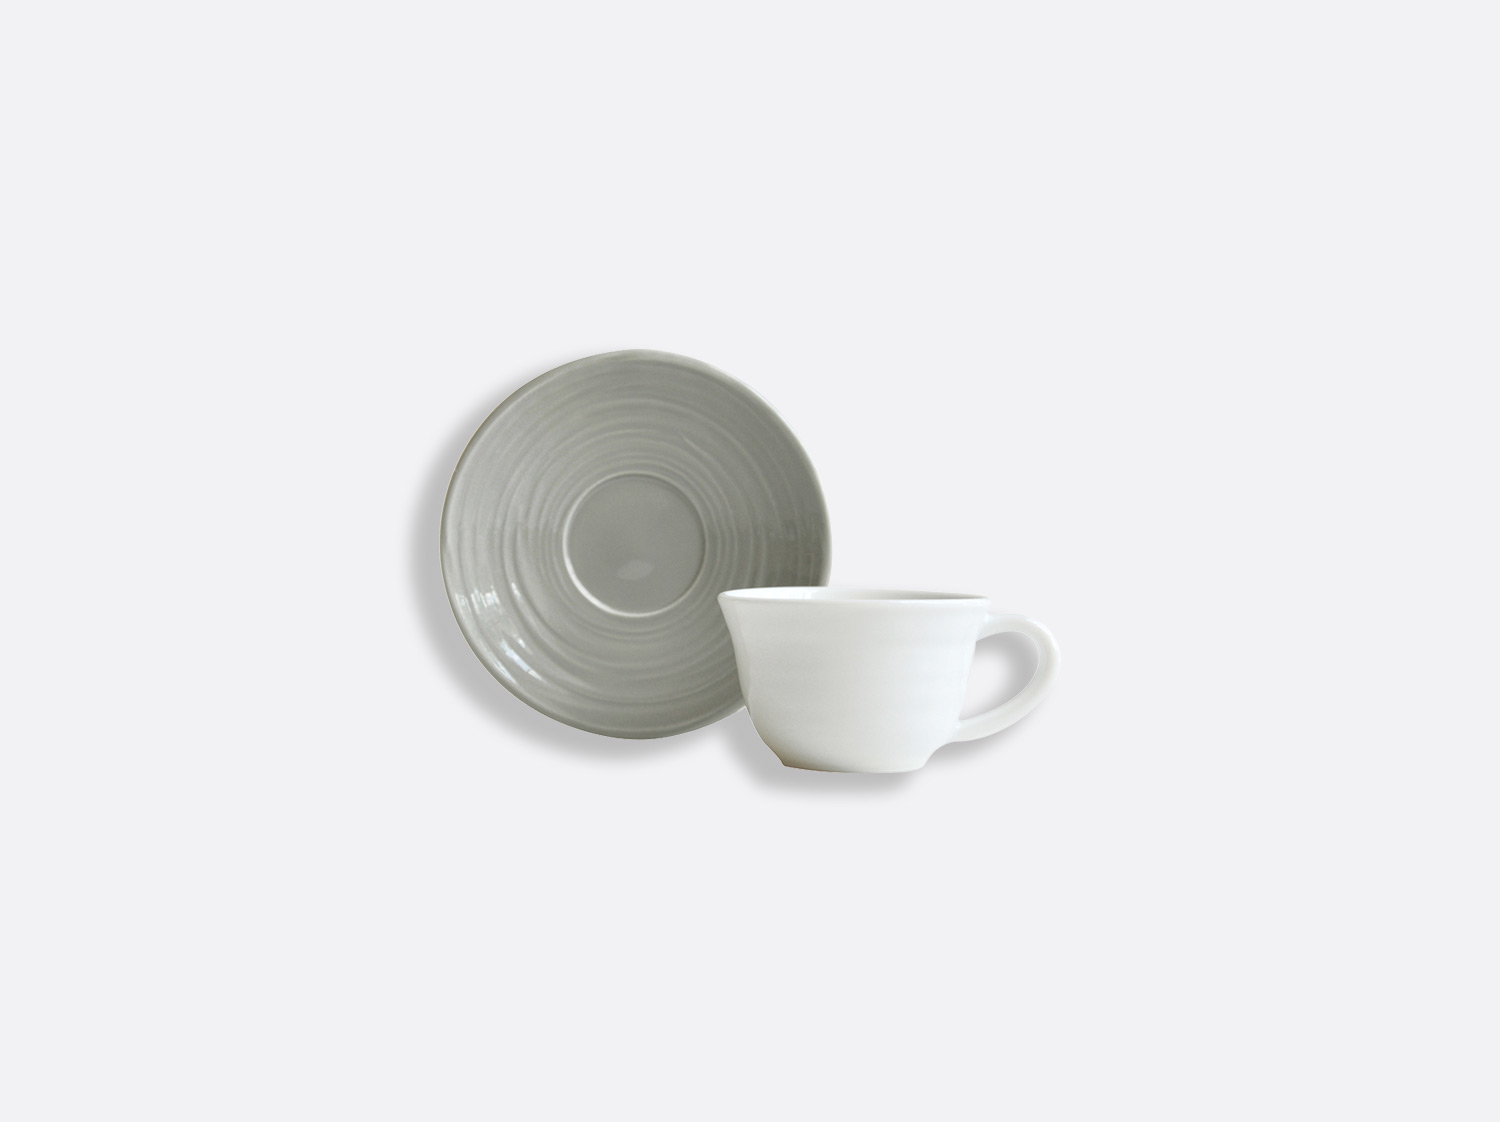 Tasse et soucoupe café Gris 7 cl en porcelaine de la collection Origine gris Bernardaud